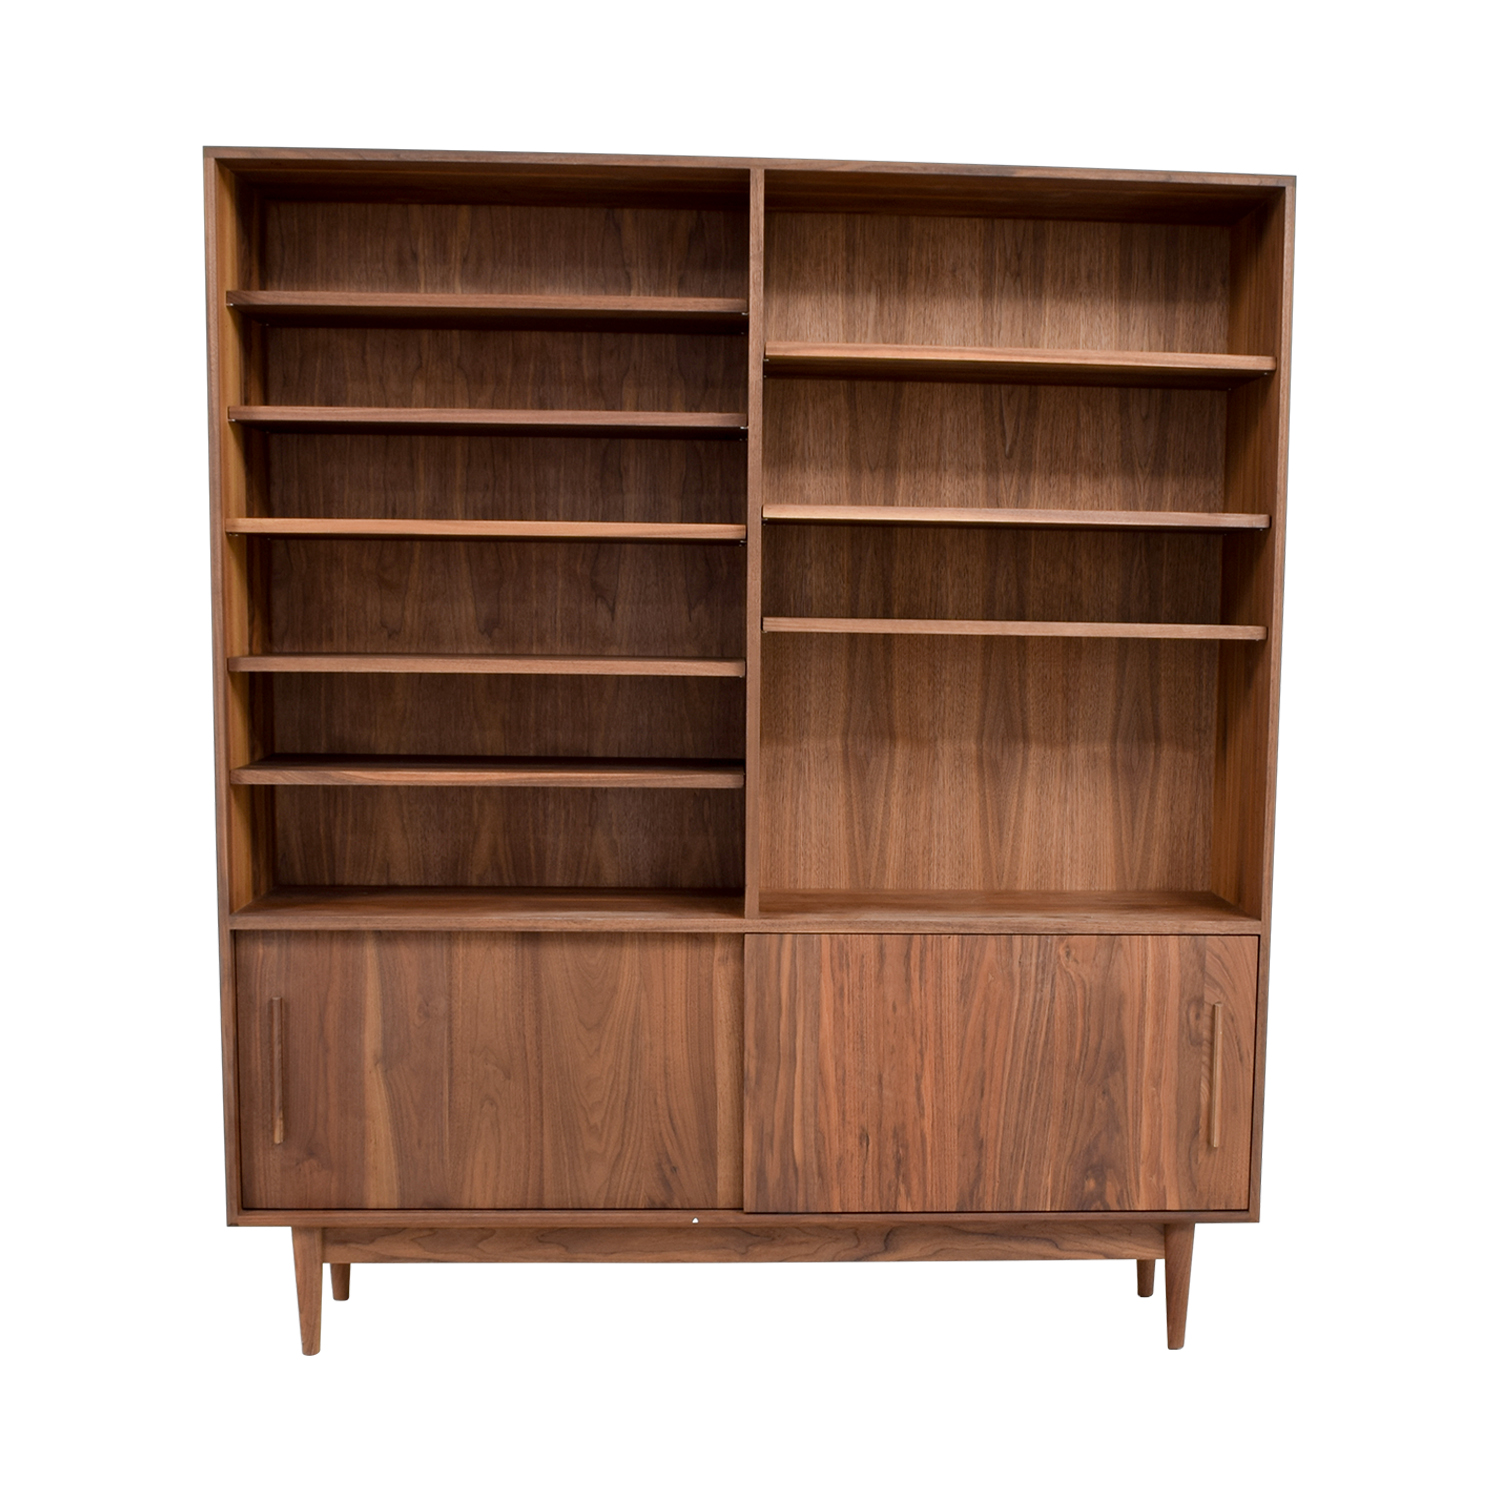 Room & Board Room & Board Grove Bookcases with Storage for sale